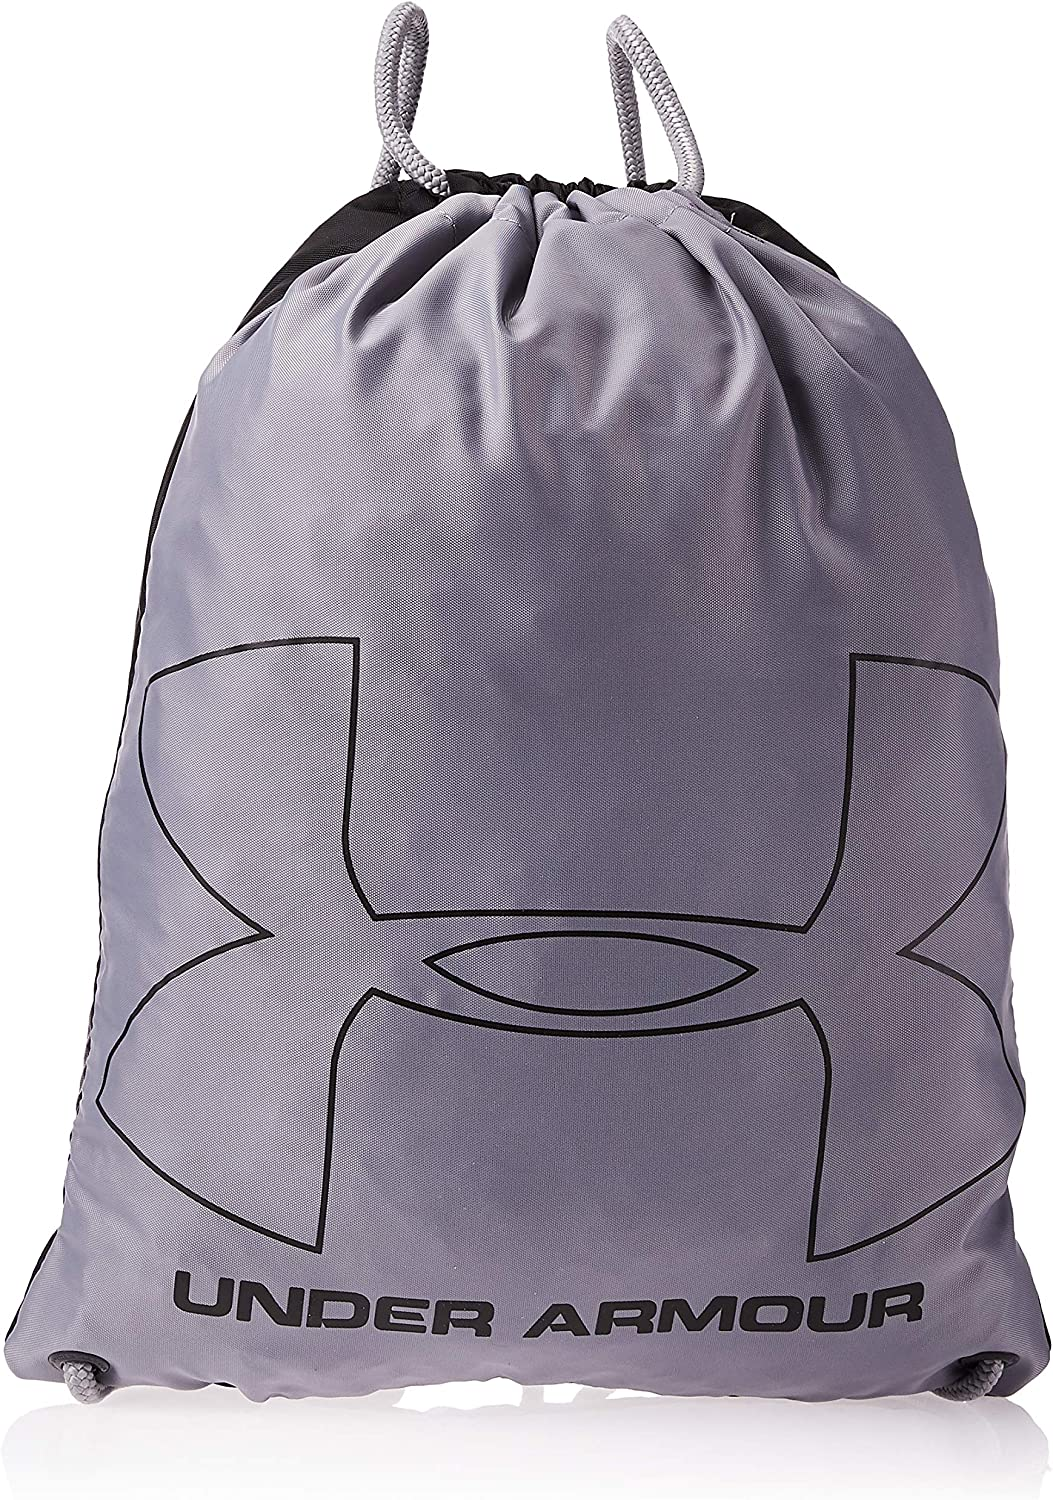 Under Armour Unisex-Adult Ozsee Sackpack